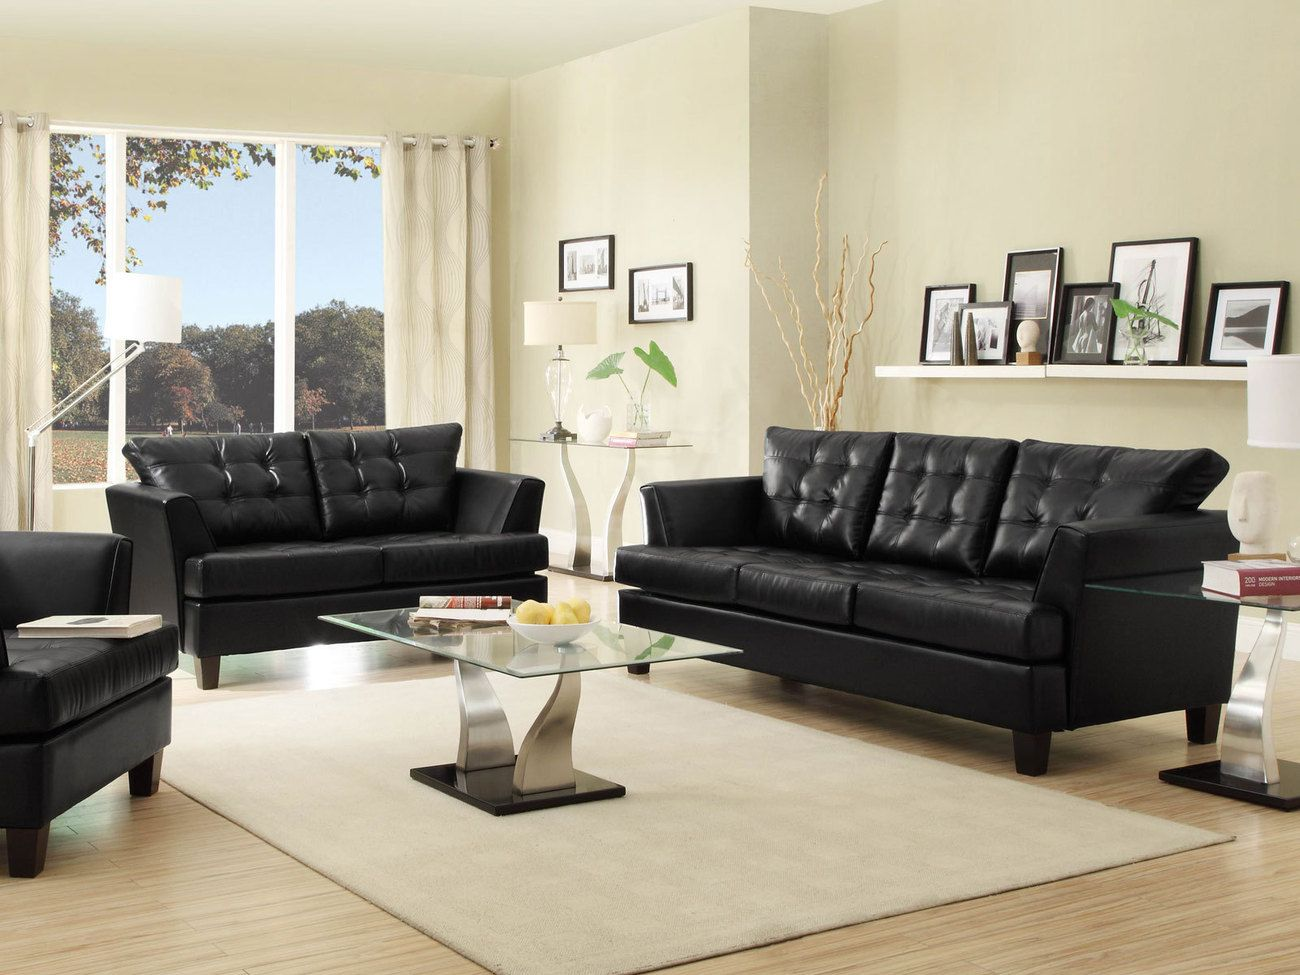 Best Iris Modern Black Faux Leather Sofa Couch Loveseat Set 640 x 480